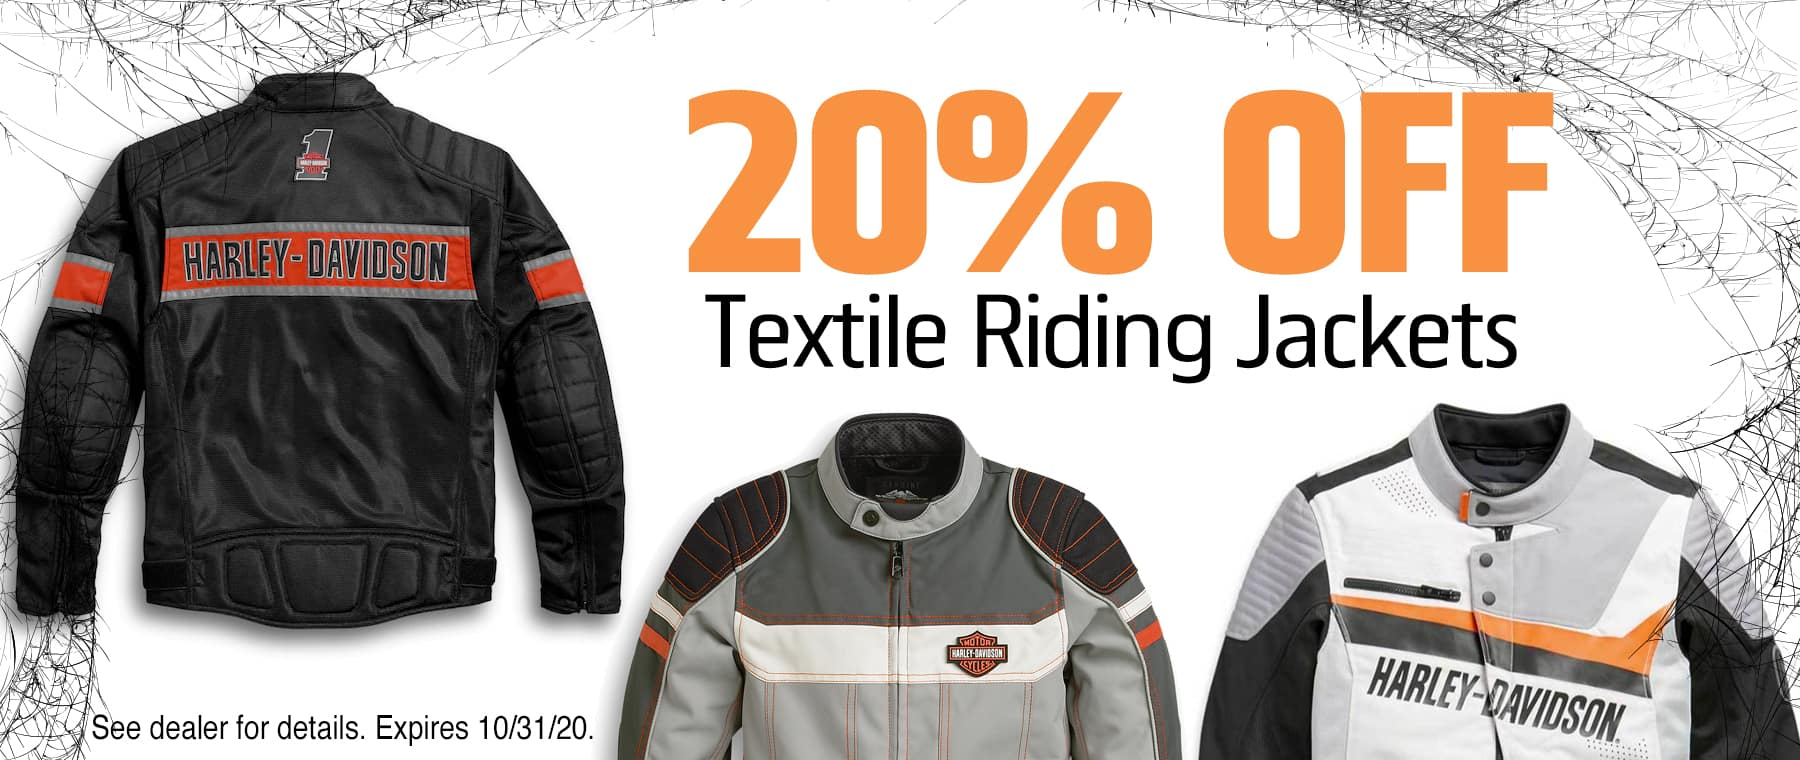 20% OFF Textile Riding Jackets at Fort Bragg Harley-Davidson